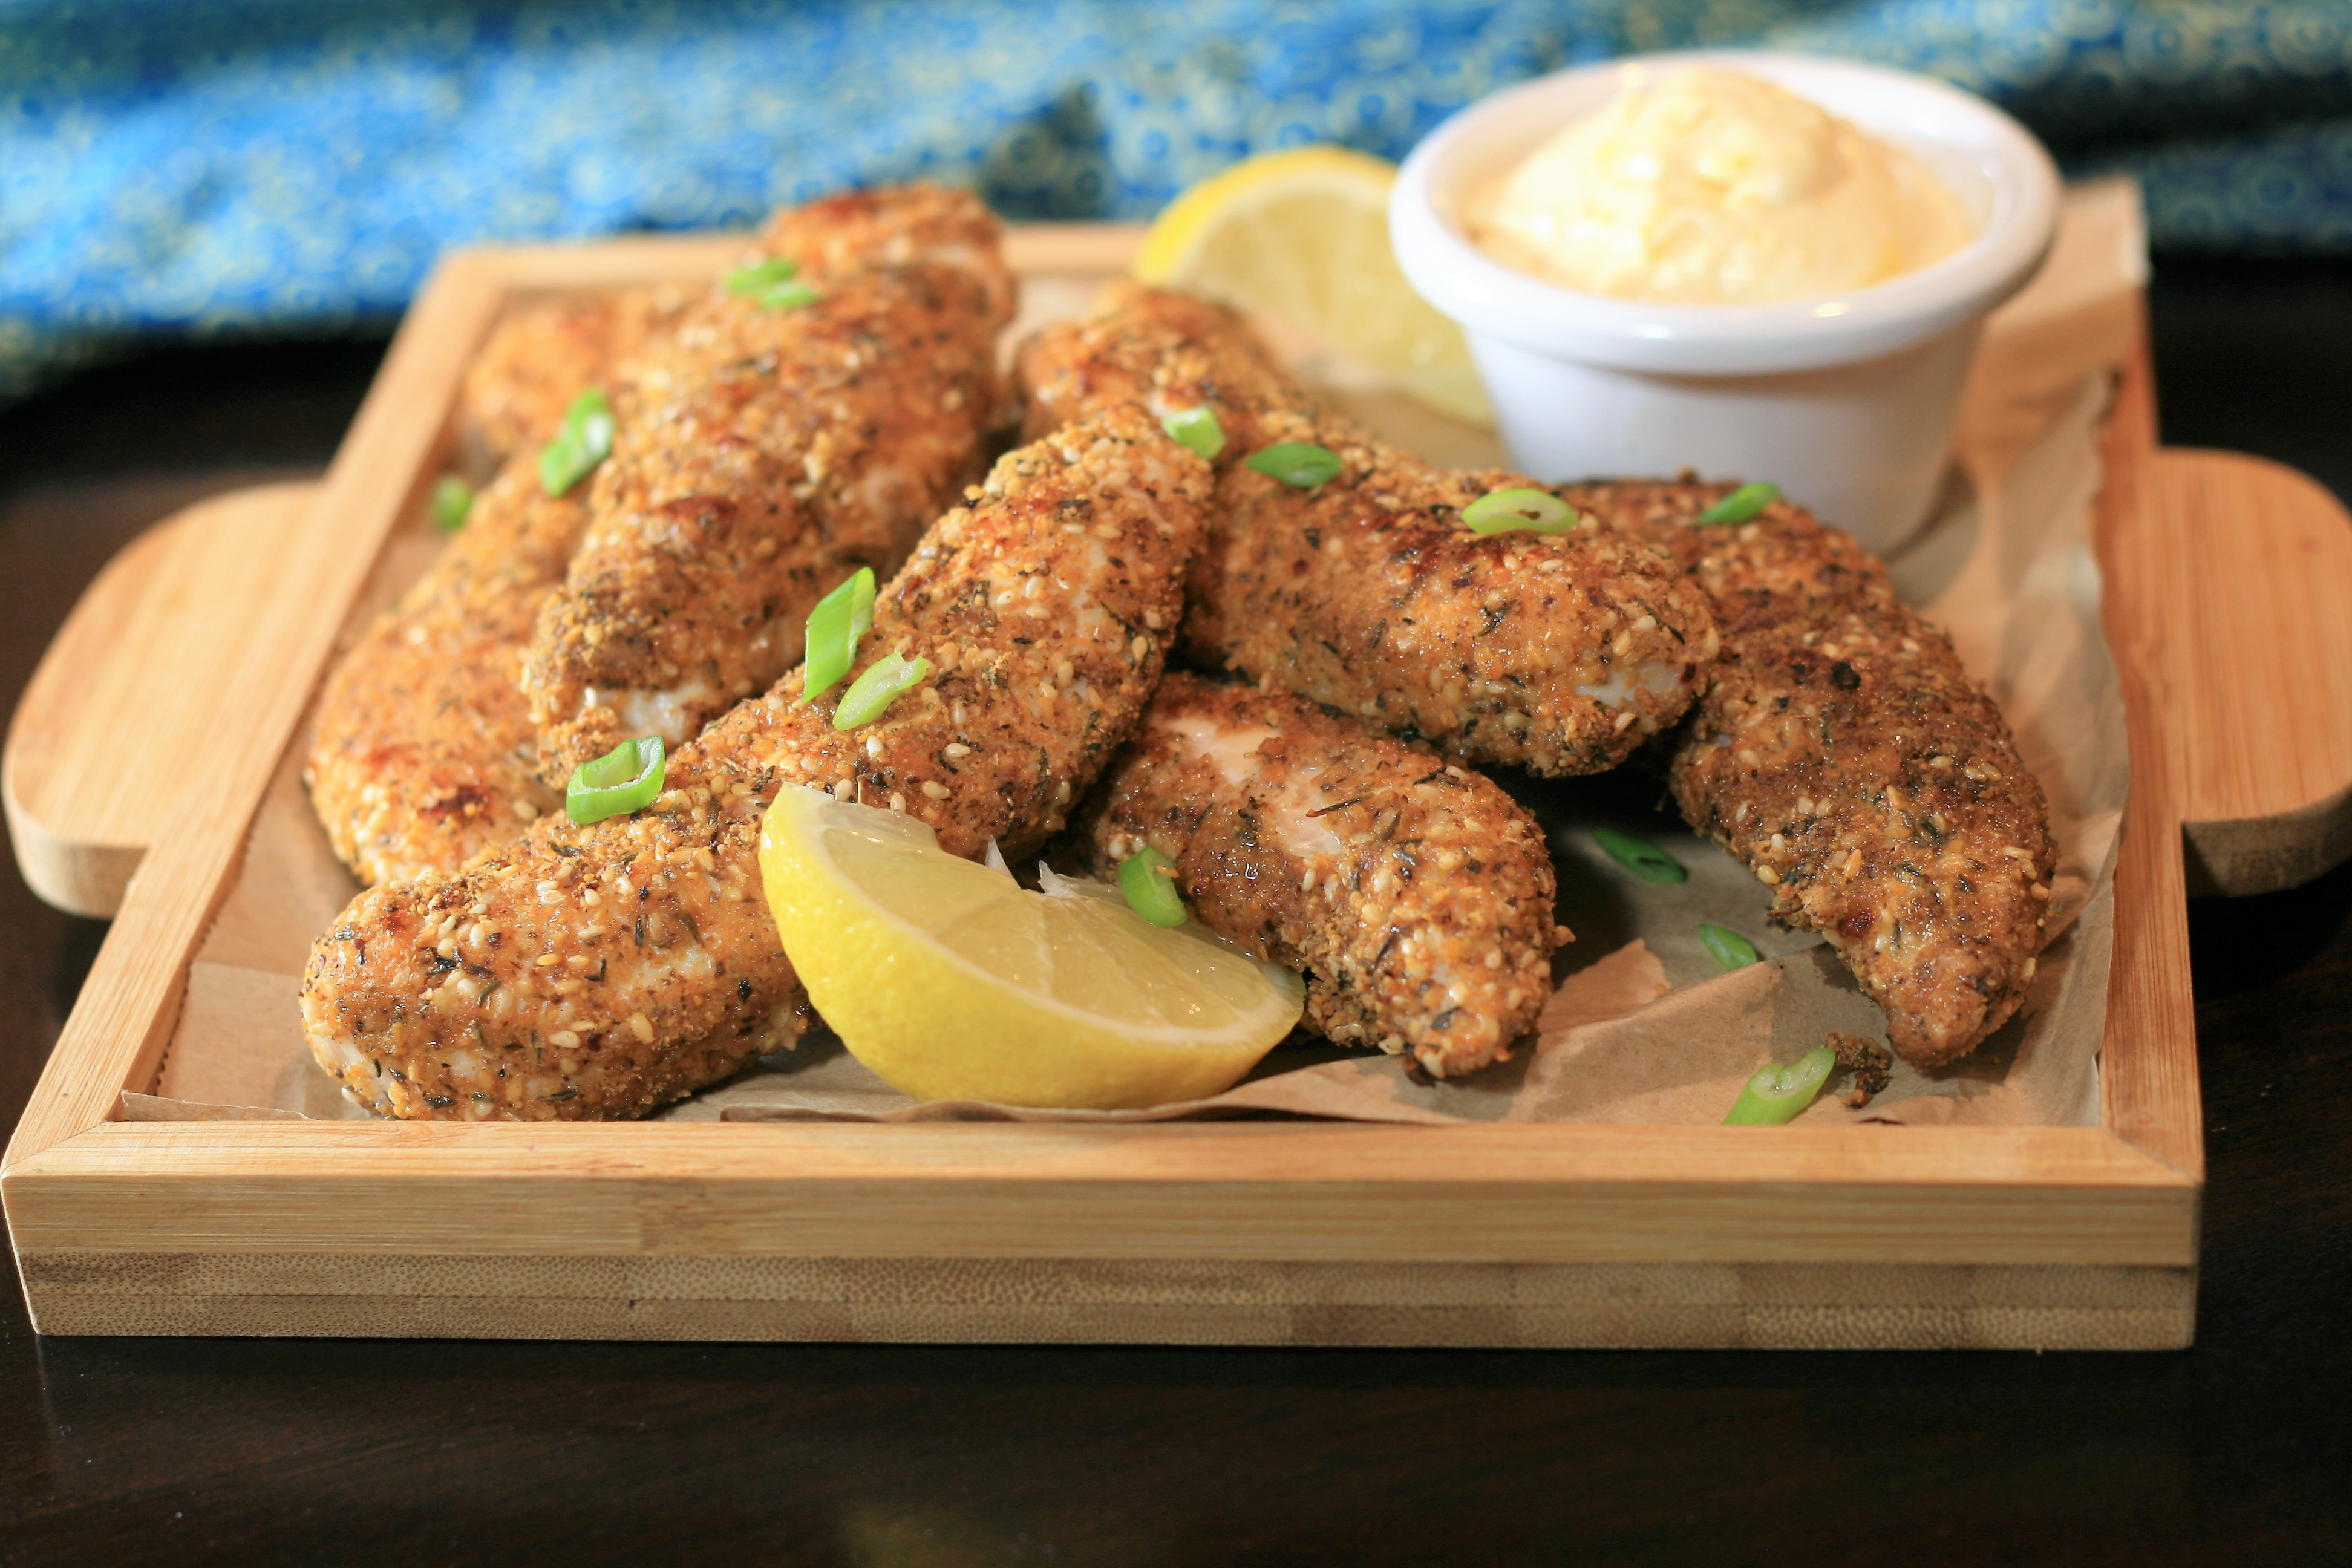 """These chicken tenders are loaded with Middle Eastern flavors,"" says France C, including minced preserved lemon peel. ""Dukkah, a spice blend made with hazelnuts, seeds and spices, is becoming increasingly popular and available in ethnic markets, spice shops, and farmers' markets. Make the aioli ahead of time for best flavor."""